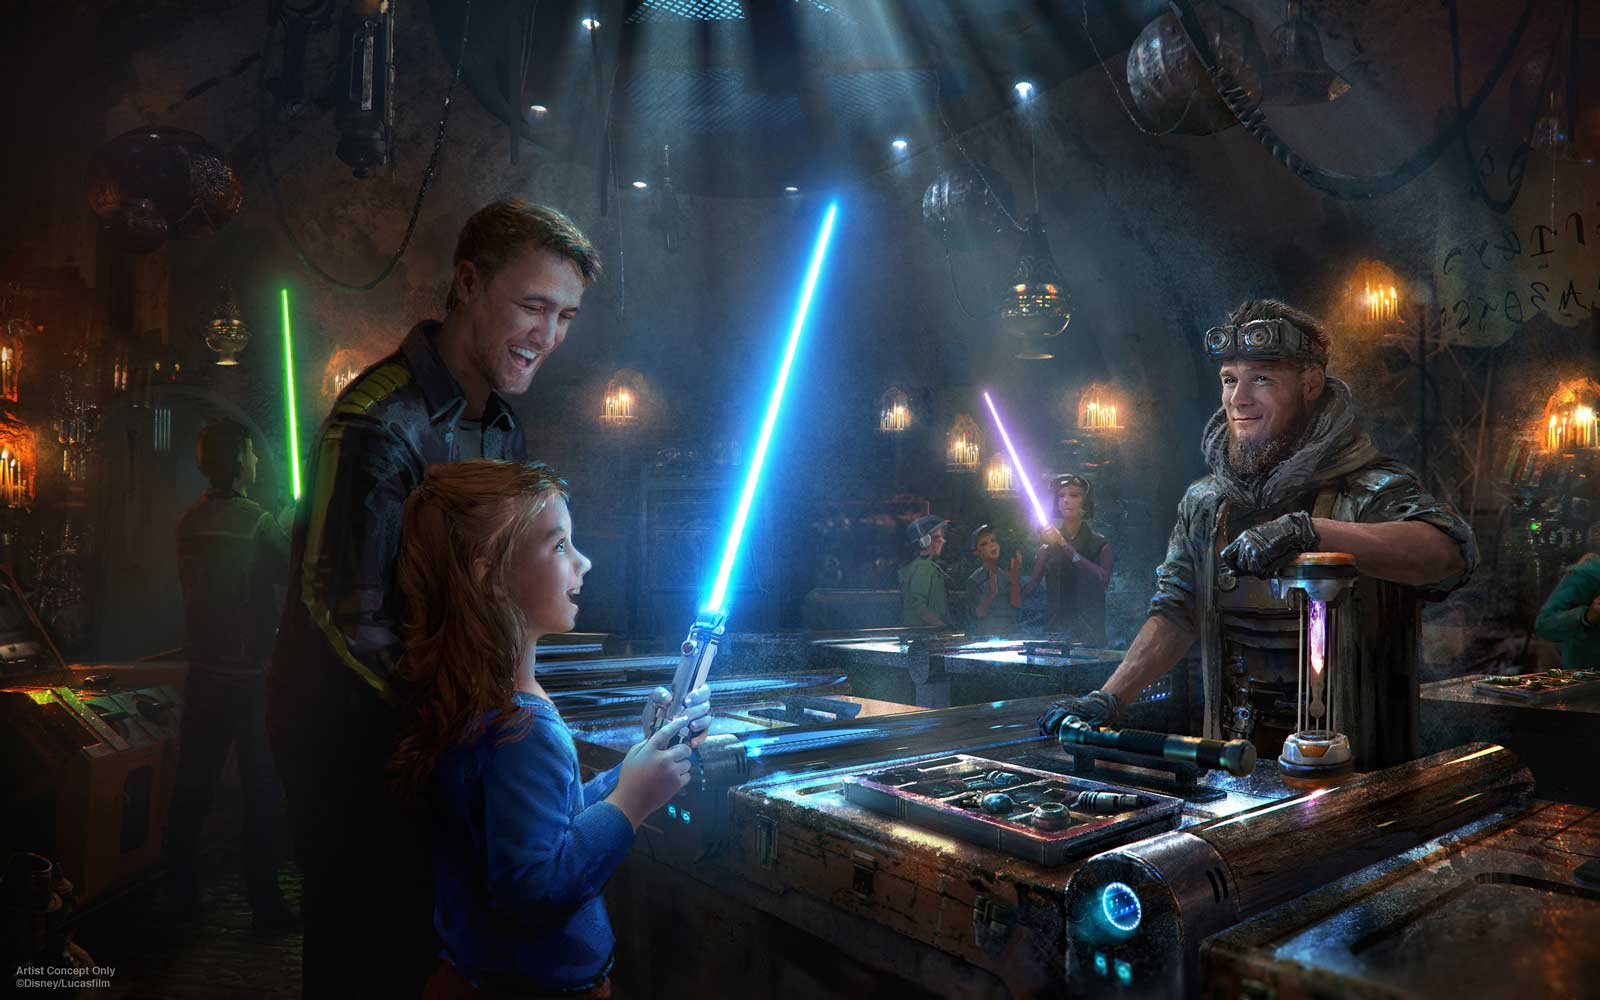 Build Your Own Droid and a Custom Lightsaber When Star Wars Land Opens This Summer